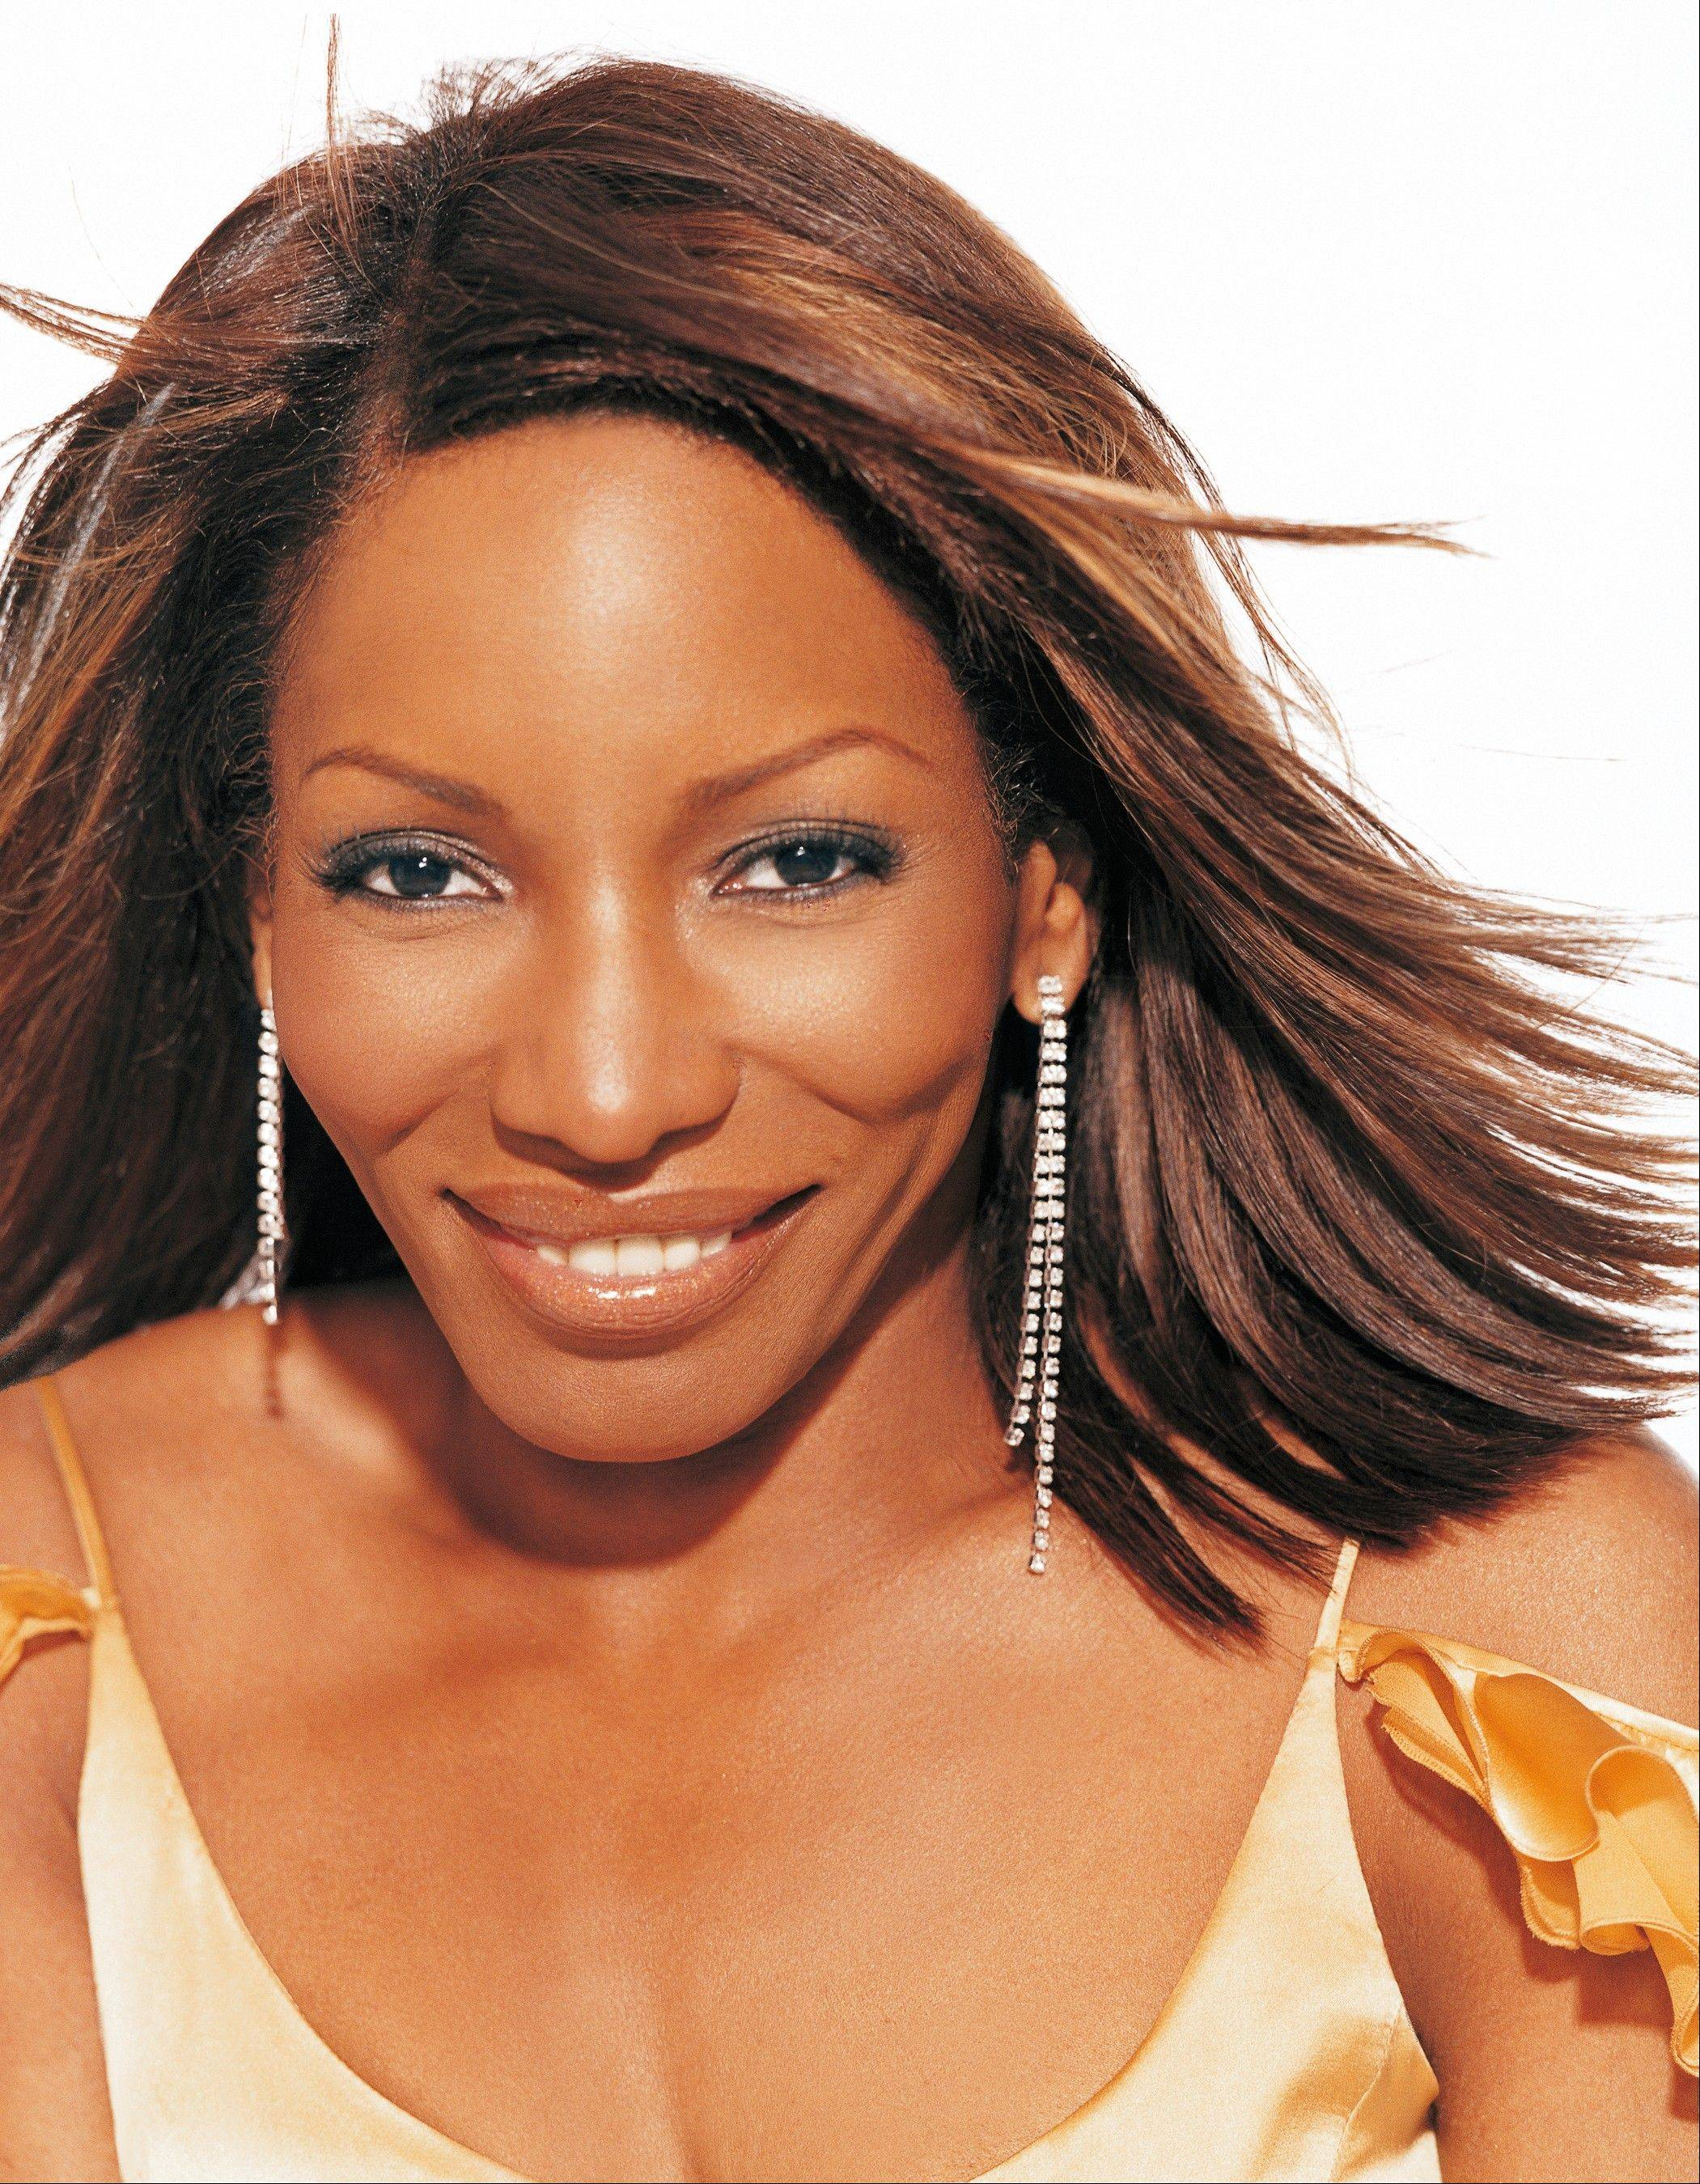 Grammy Award-winning R&B and former Broadway star Stephanie Mills is set to perform at North Central College's Pfeiffer Hall in Naperville on Saturday, Sept. 21.